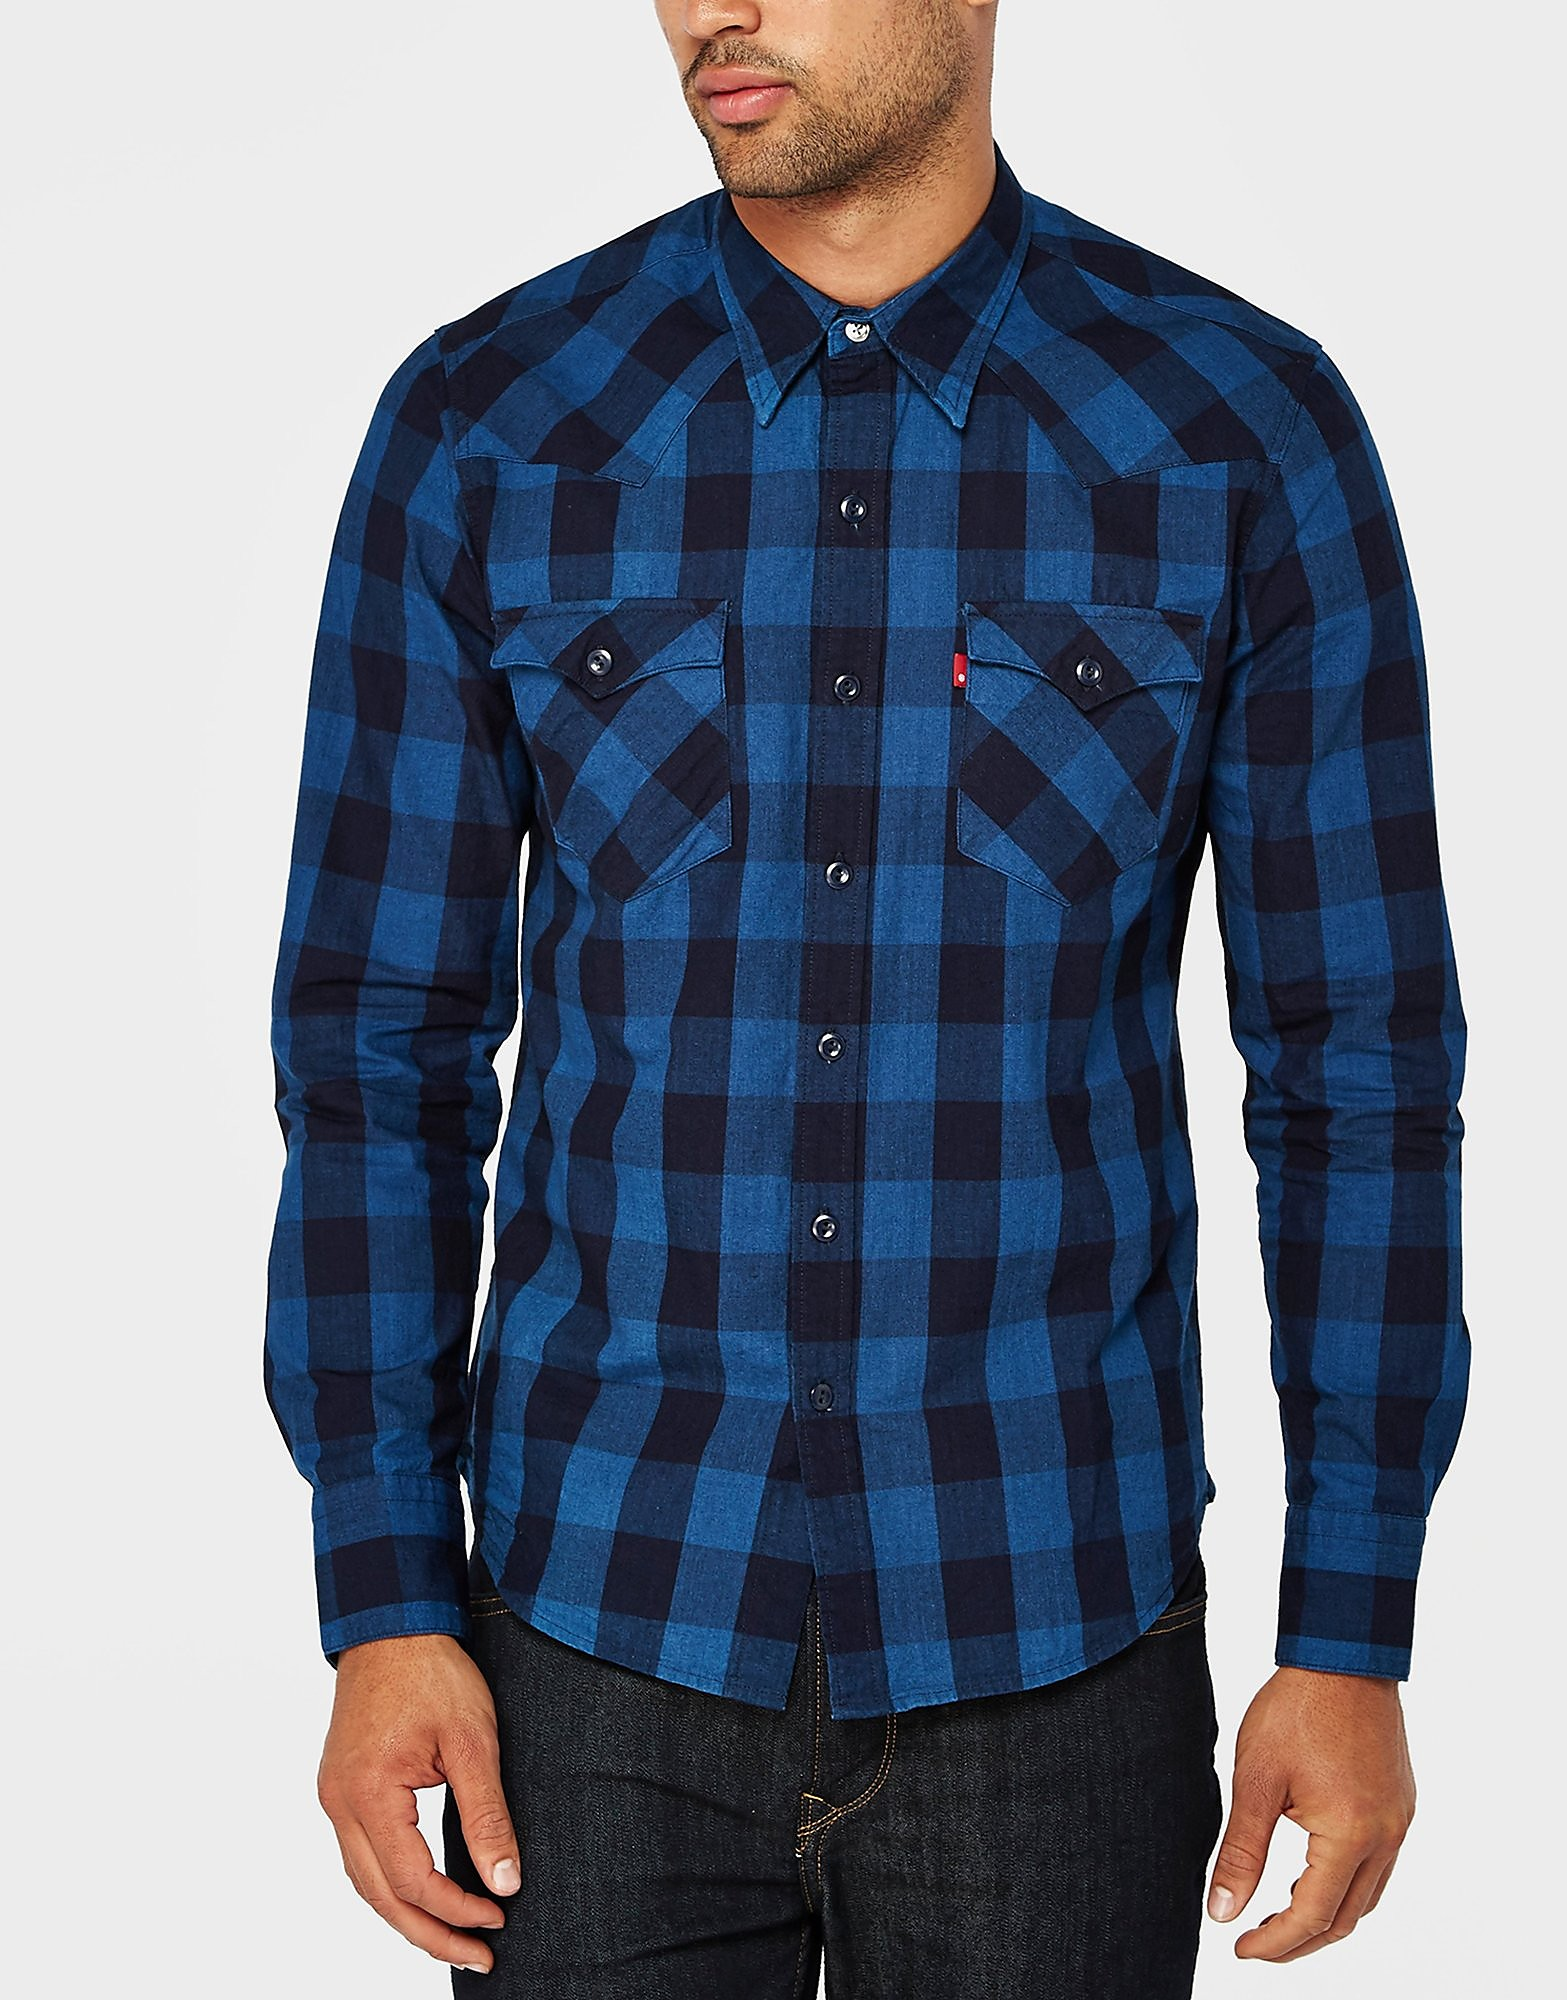 Levis Barstow Checkered Shirt